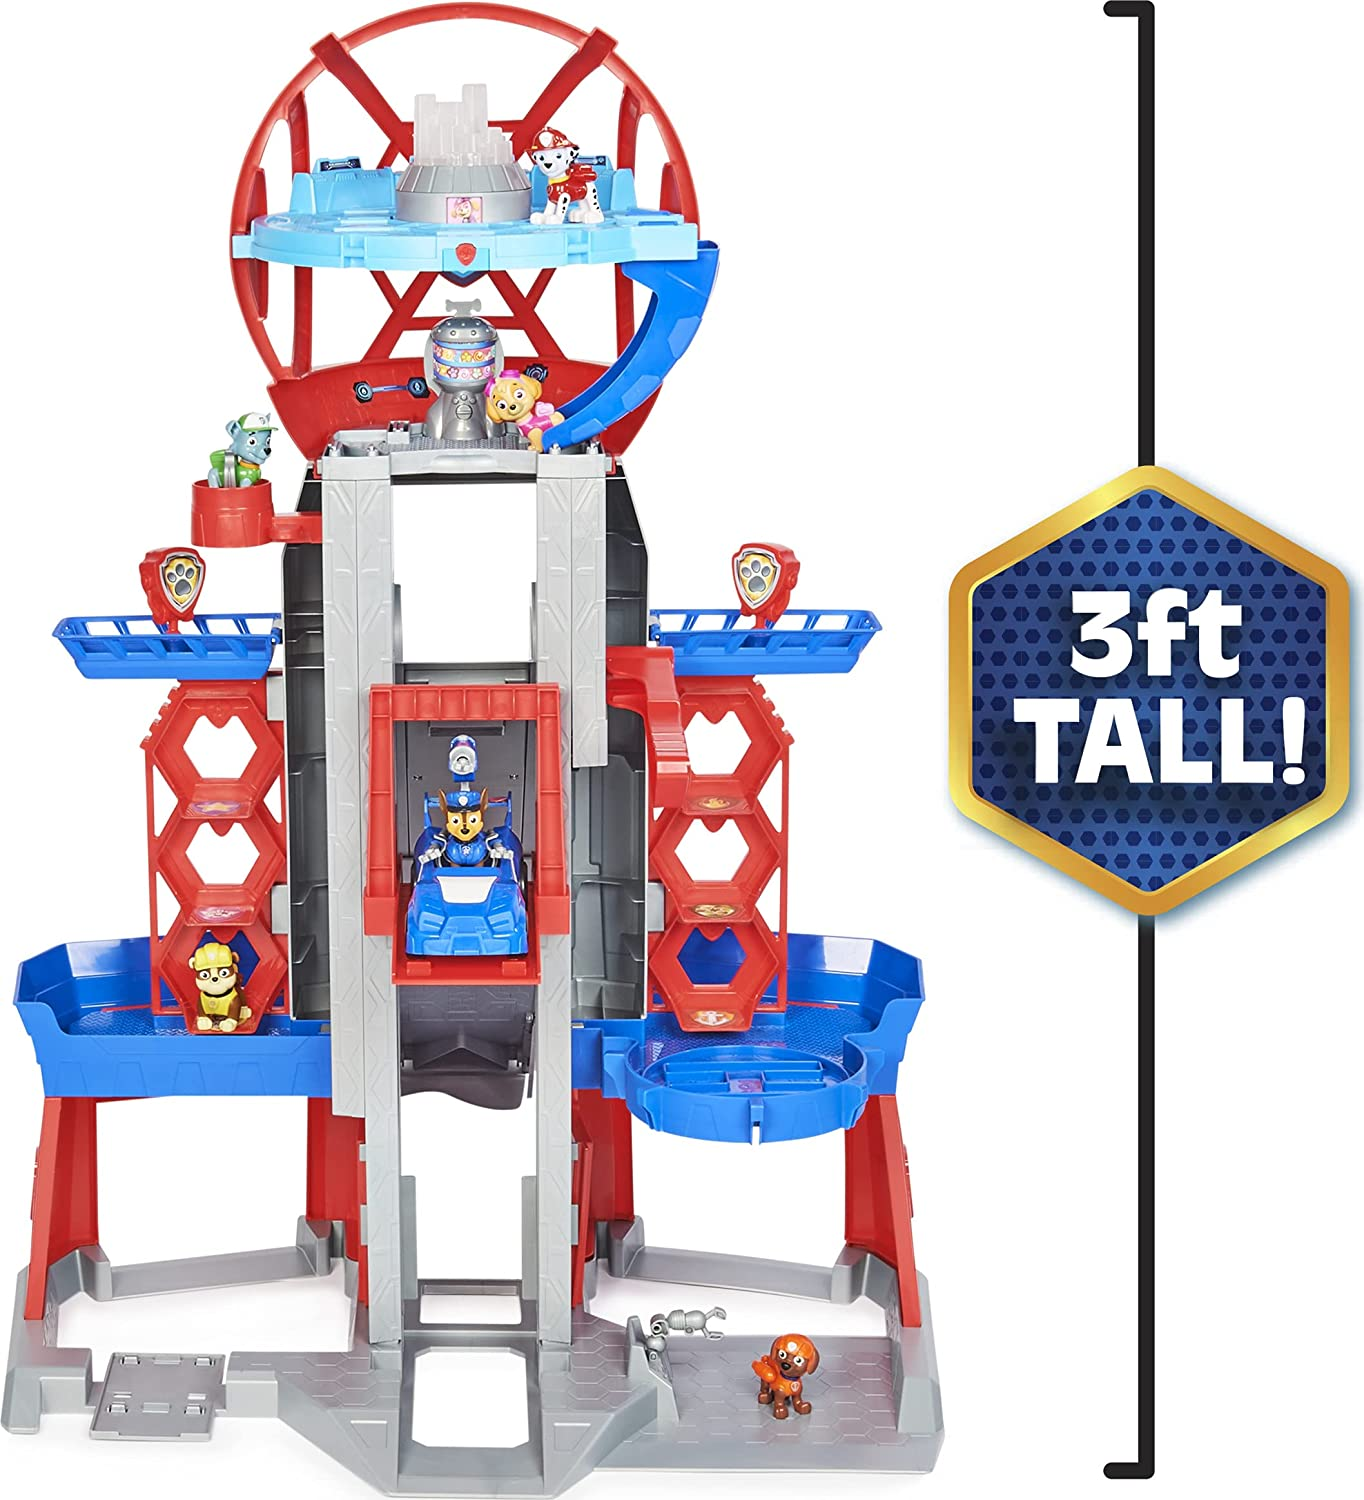 Paw Patrol Movie Ultimate City Tower - Full view of the tower, showing the height